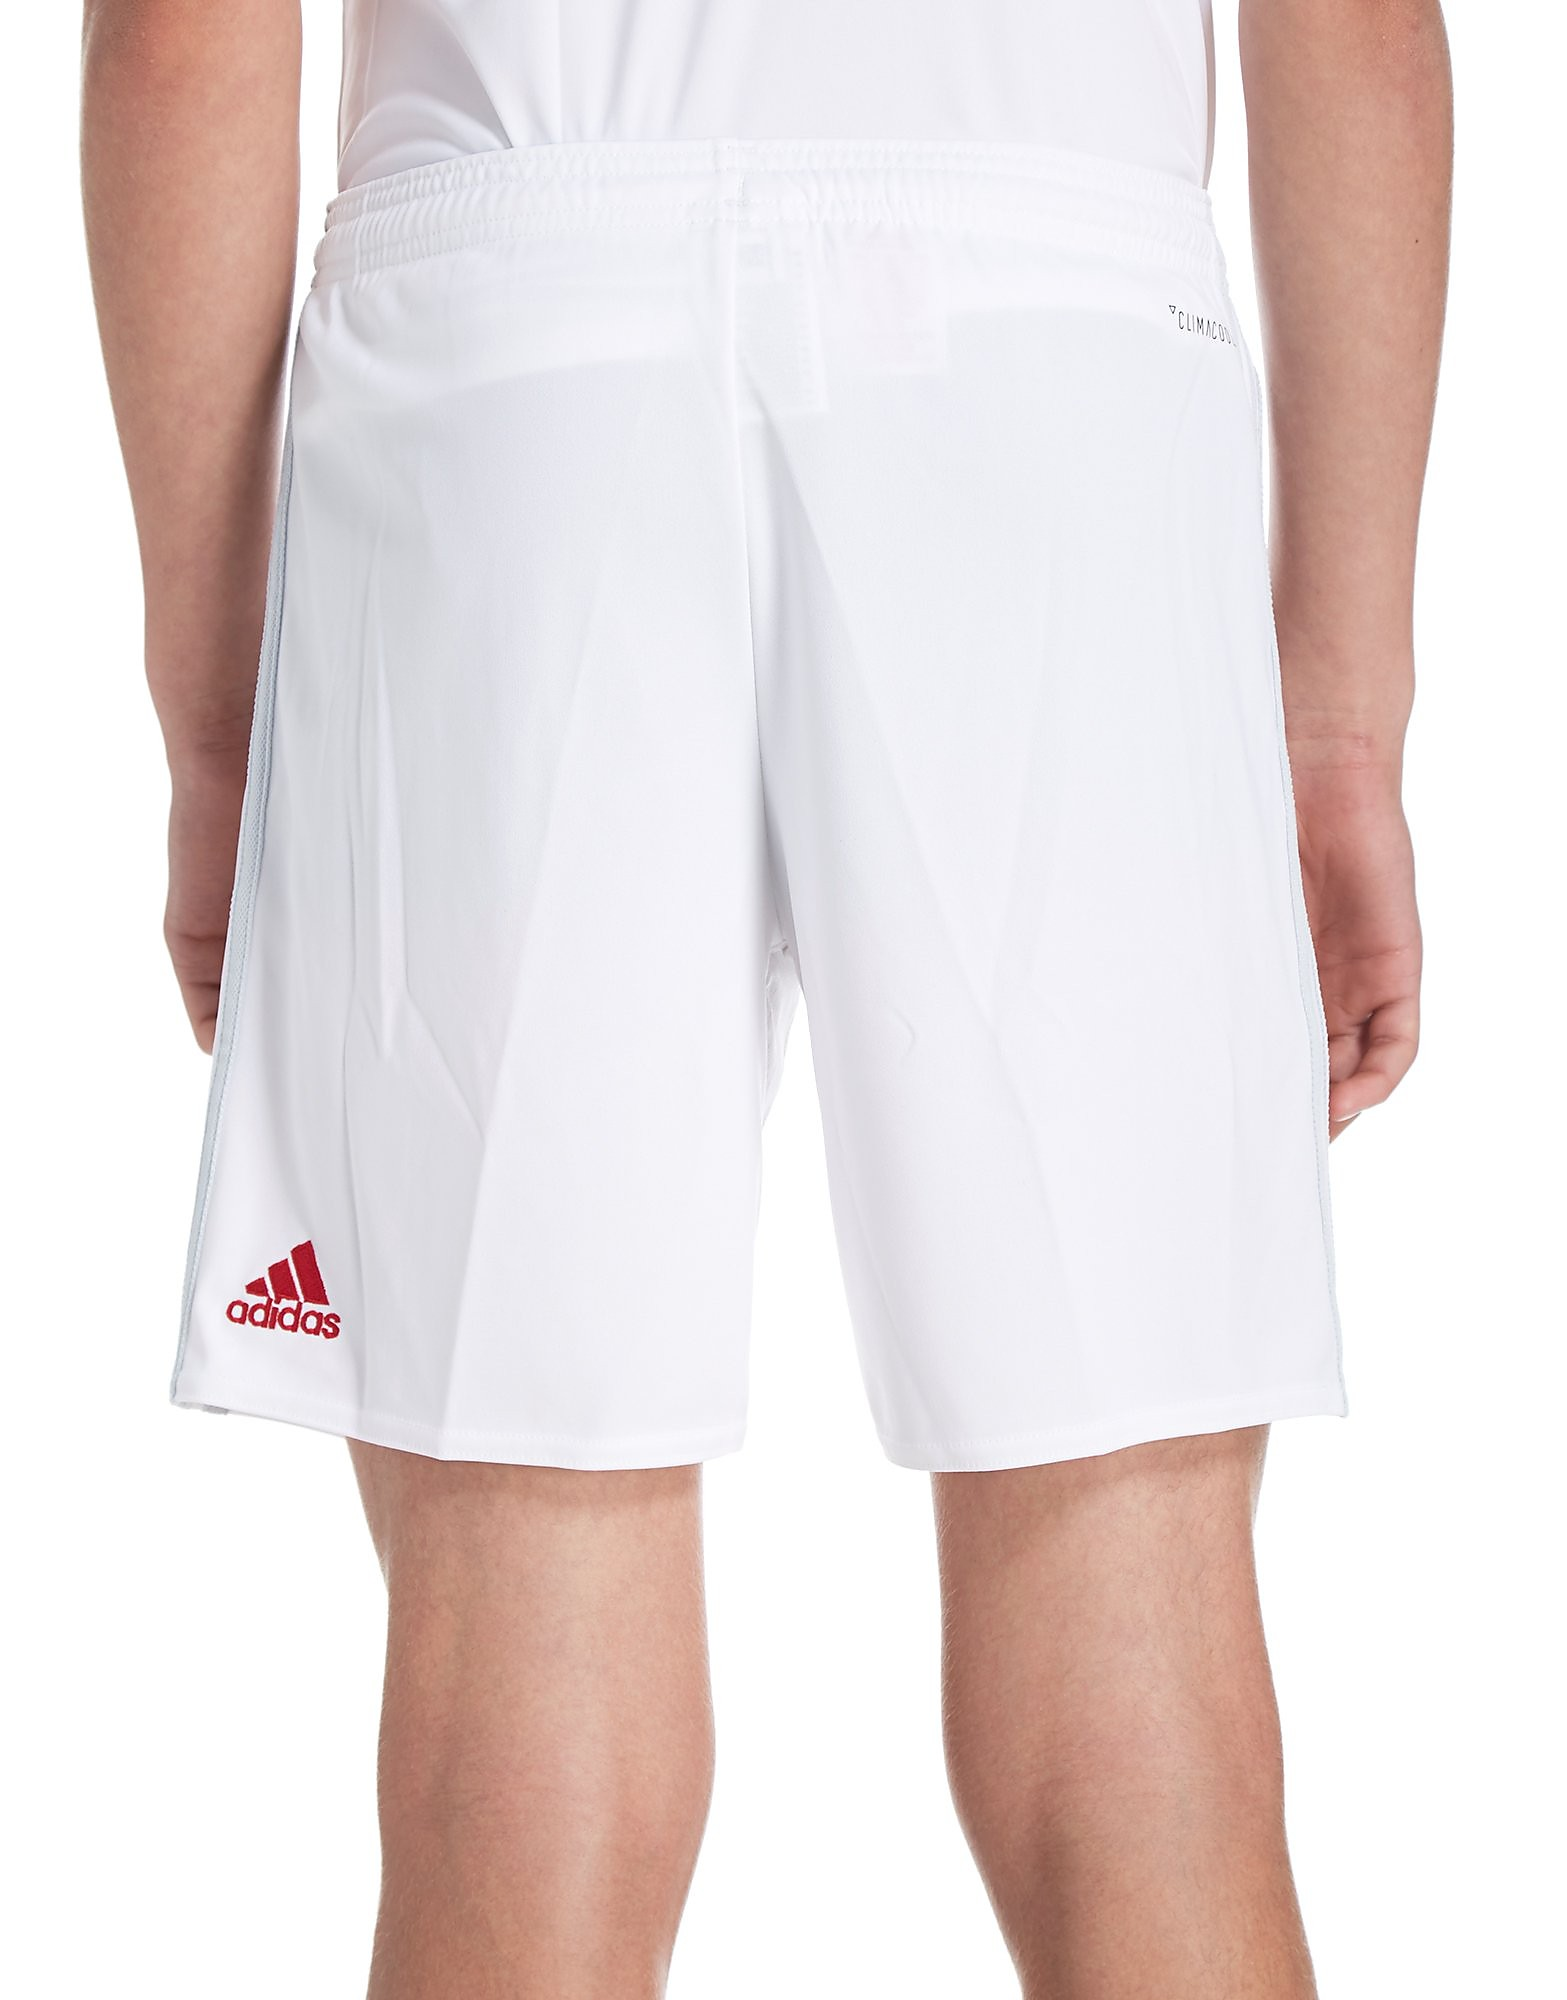 adidas Ajax 2017/18 Home Shorts Junior